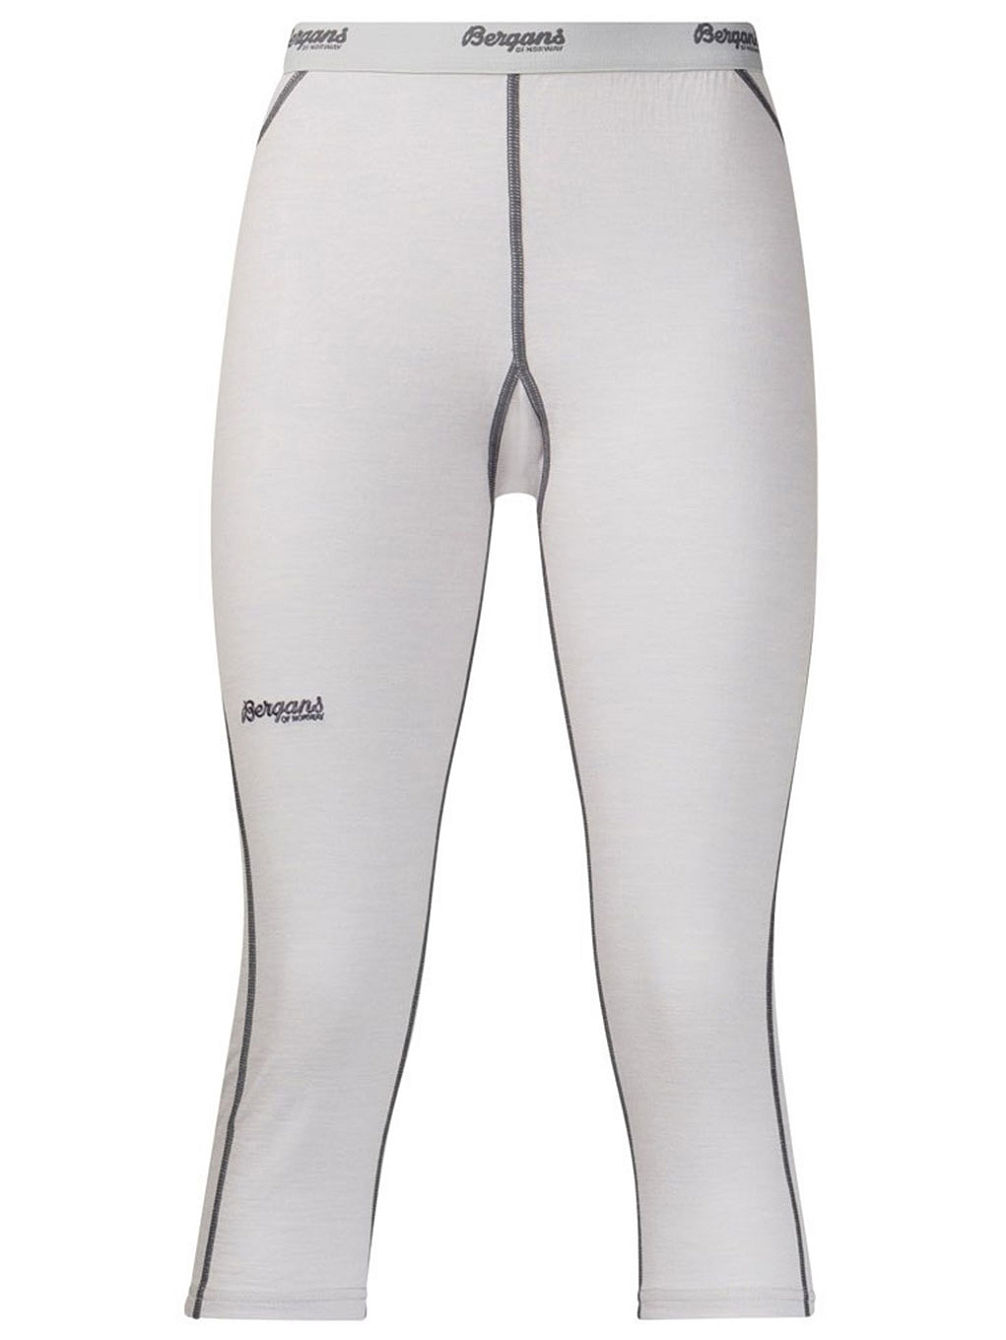 Fjellrapp Lady 3/4 Tights